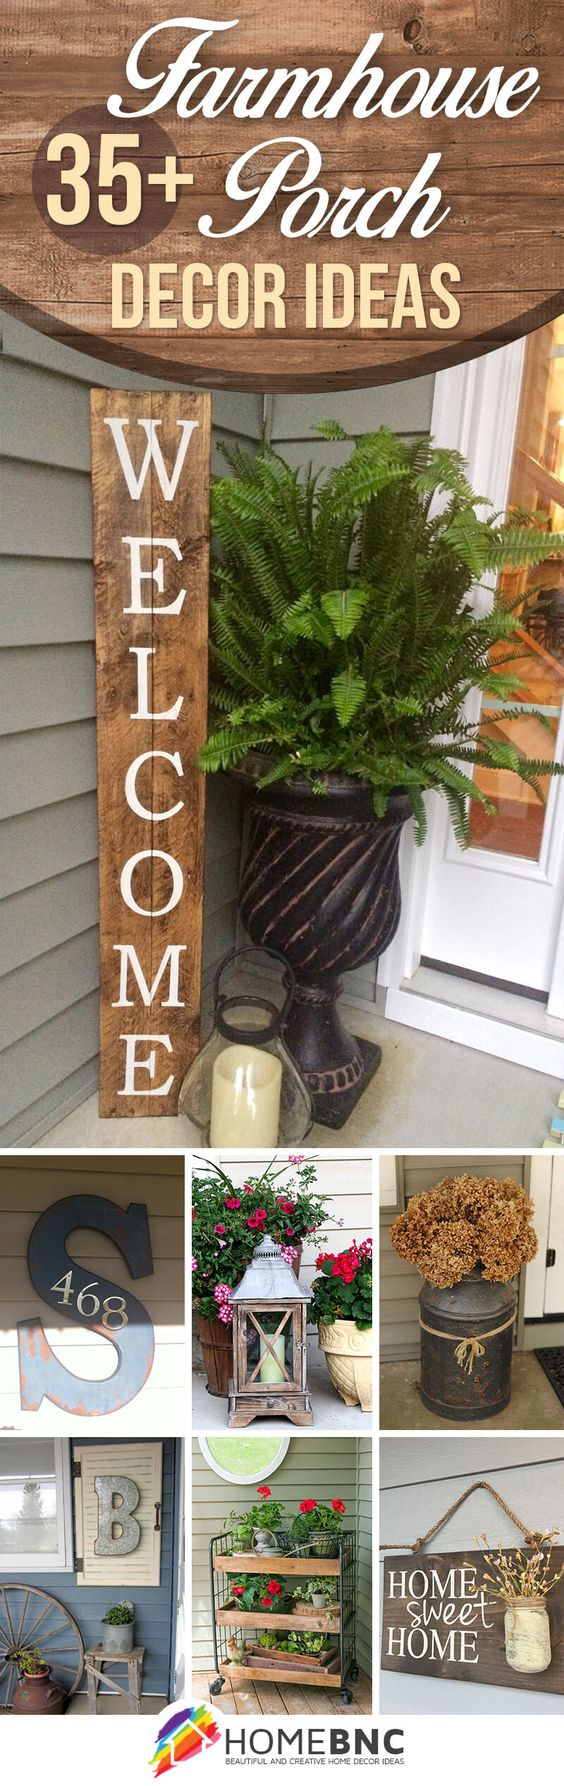 Rustic farmhouse porch decor ideas that are sure to delight both guests and residents year-round. Discover the best designs!